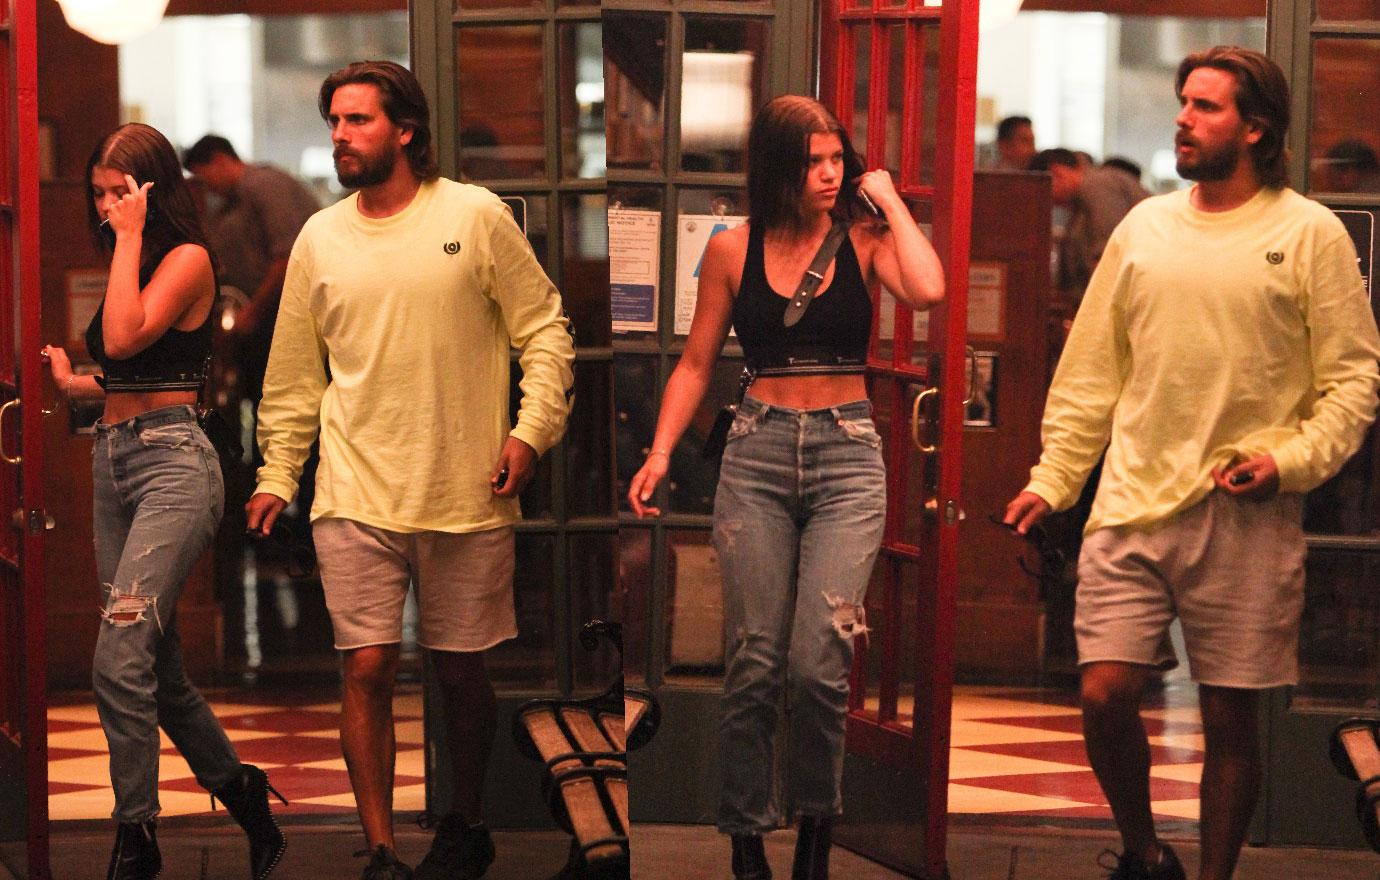 Scott Disick And Sofia Richie Leave Restaurant In Los Angeles